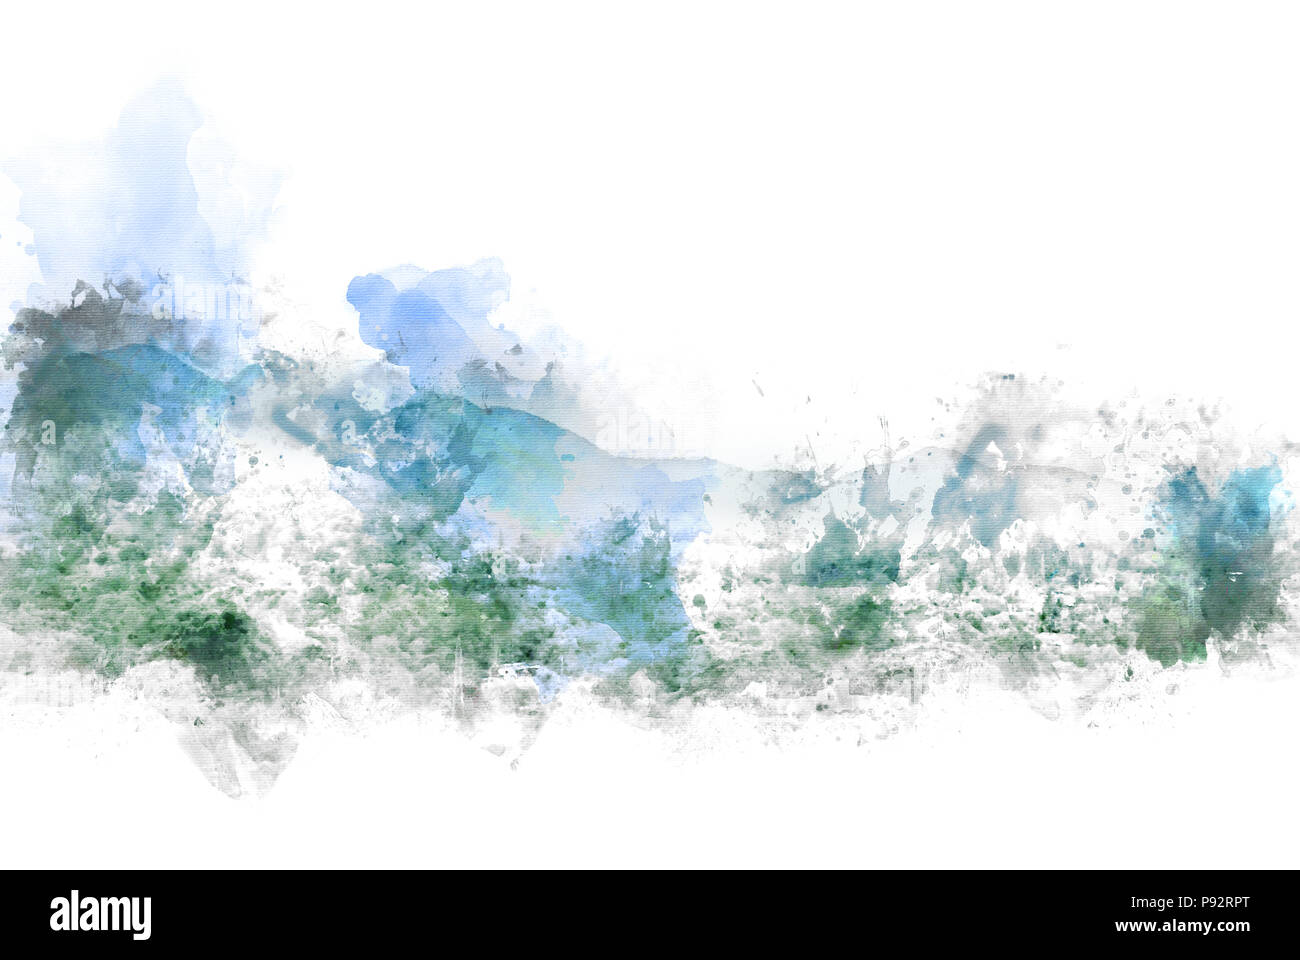 Abstract colorful mountain and field landscape on watercolor illustration painting background. - Stock Image